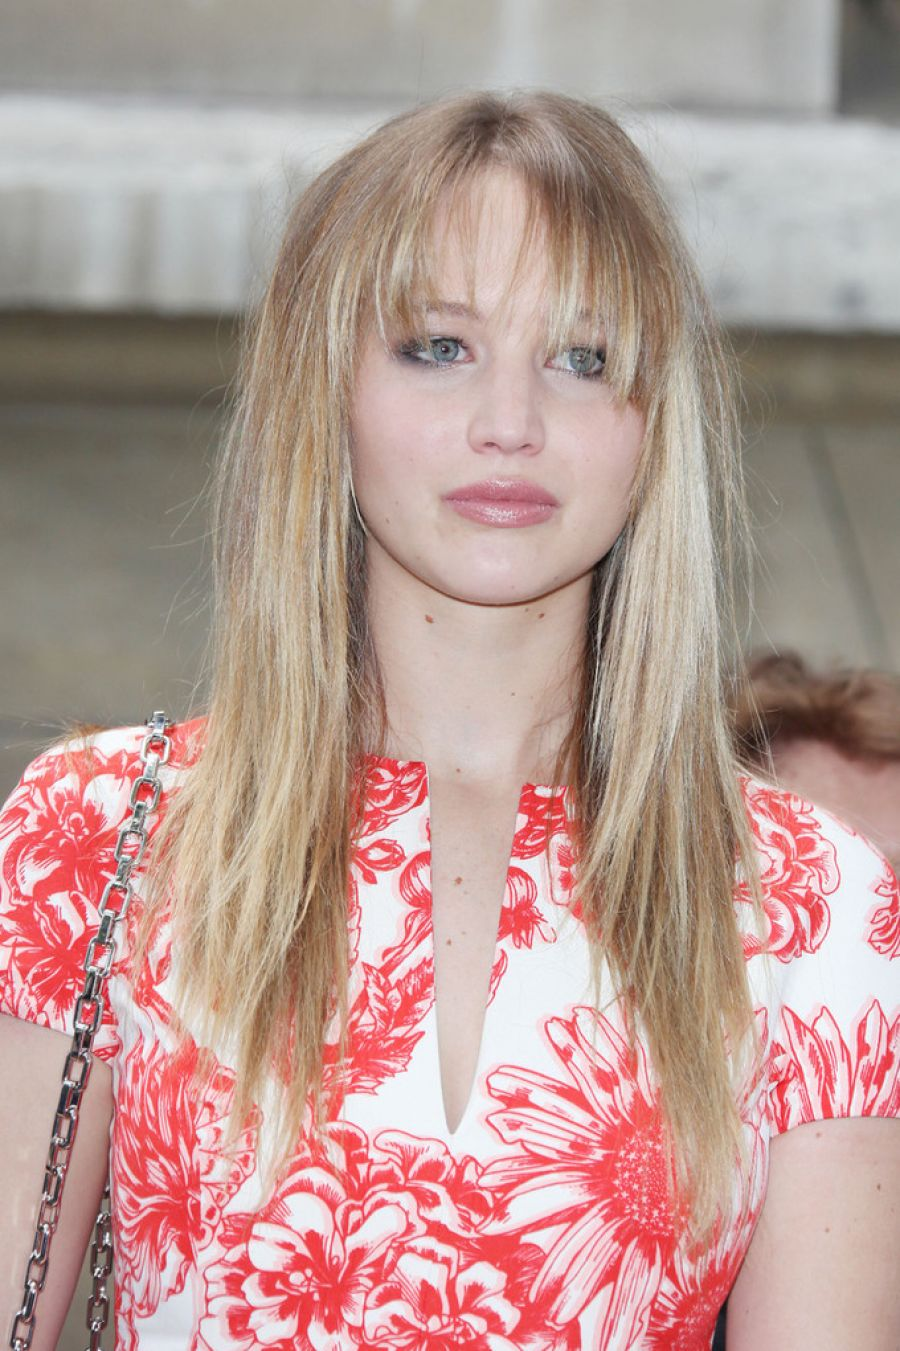 Amazing The Long Fringe And Asymmetric Layers Of This Edgy Cut Add A Feminine